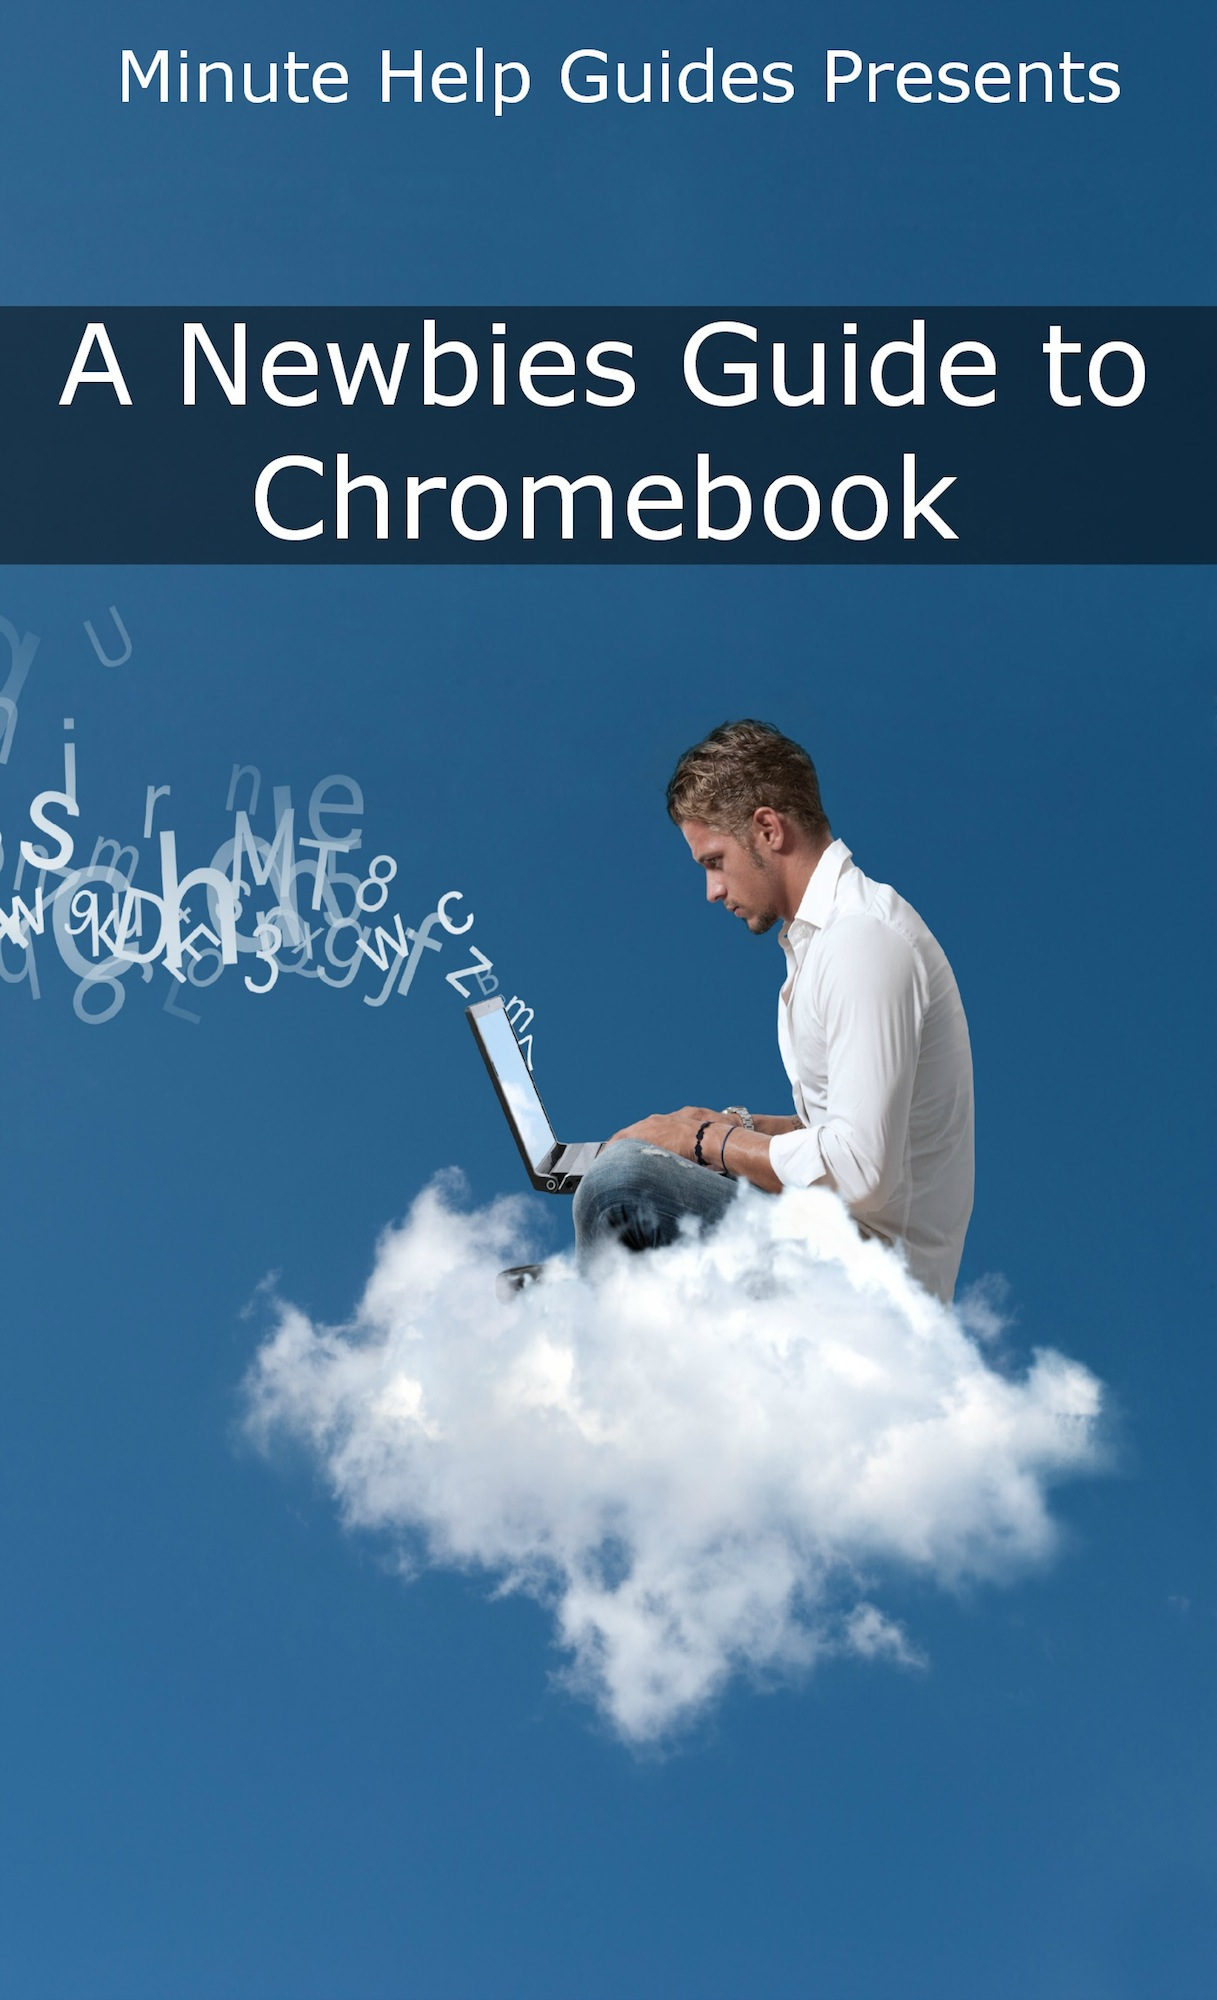 A Newbies Guide to Chromebook By: Minute Help Guides